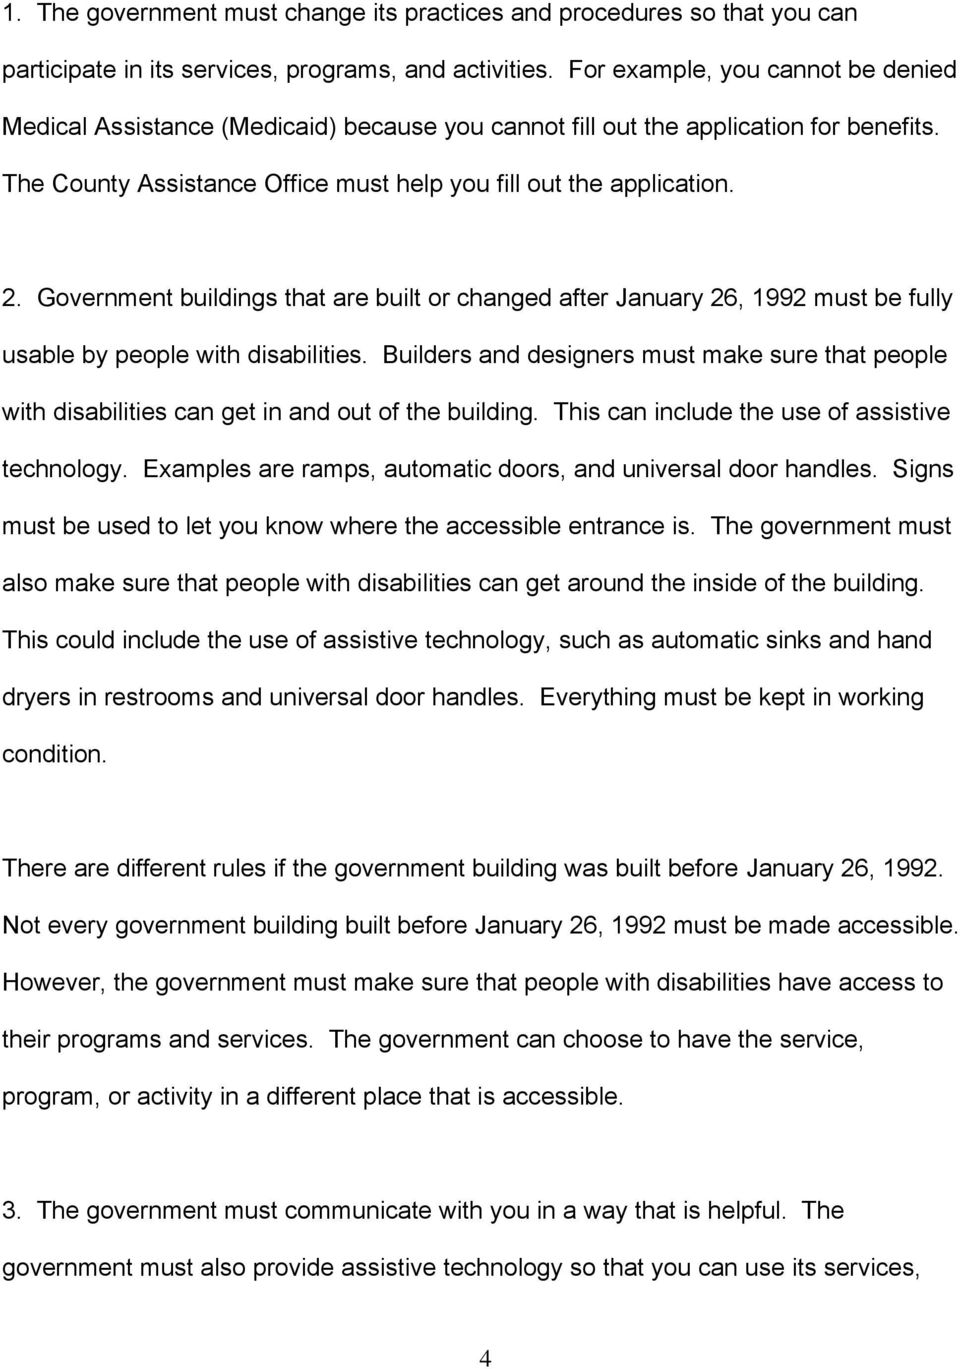 Government buildings that are built or changed after January 26, 1992 must be fully usable by people with disabilities.